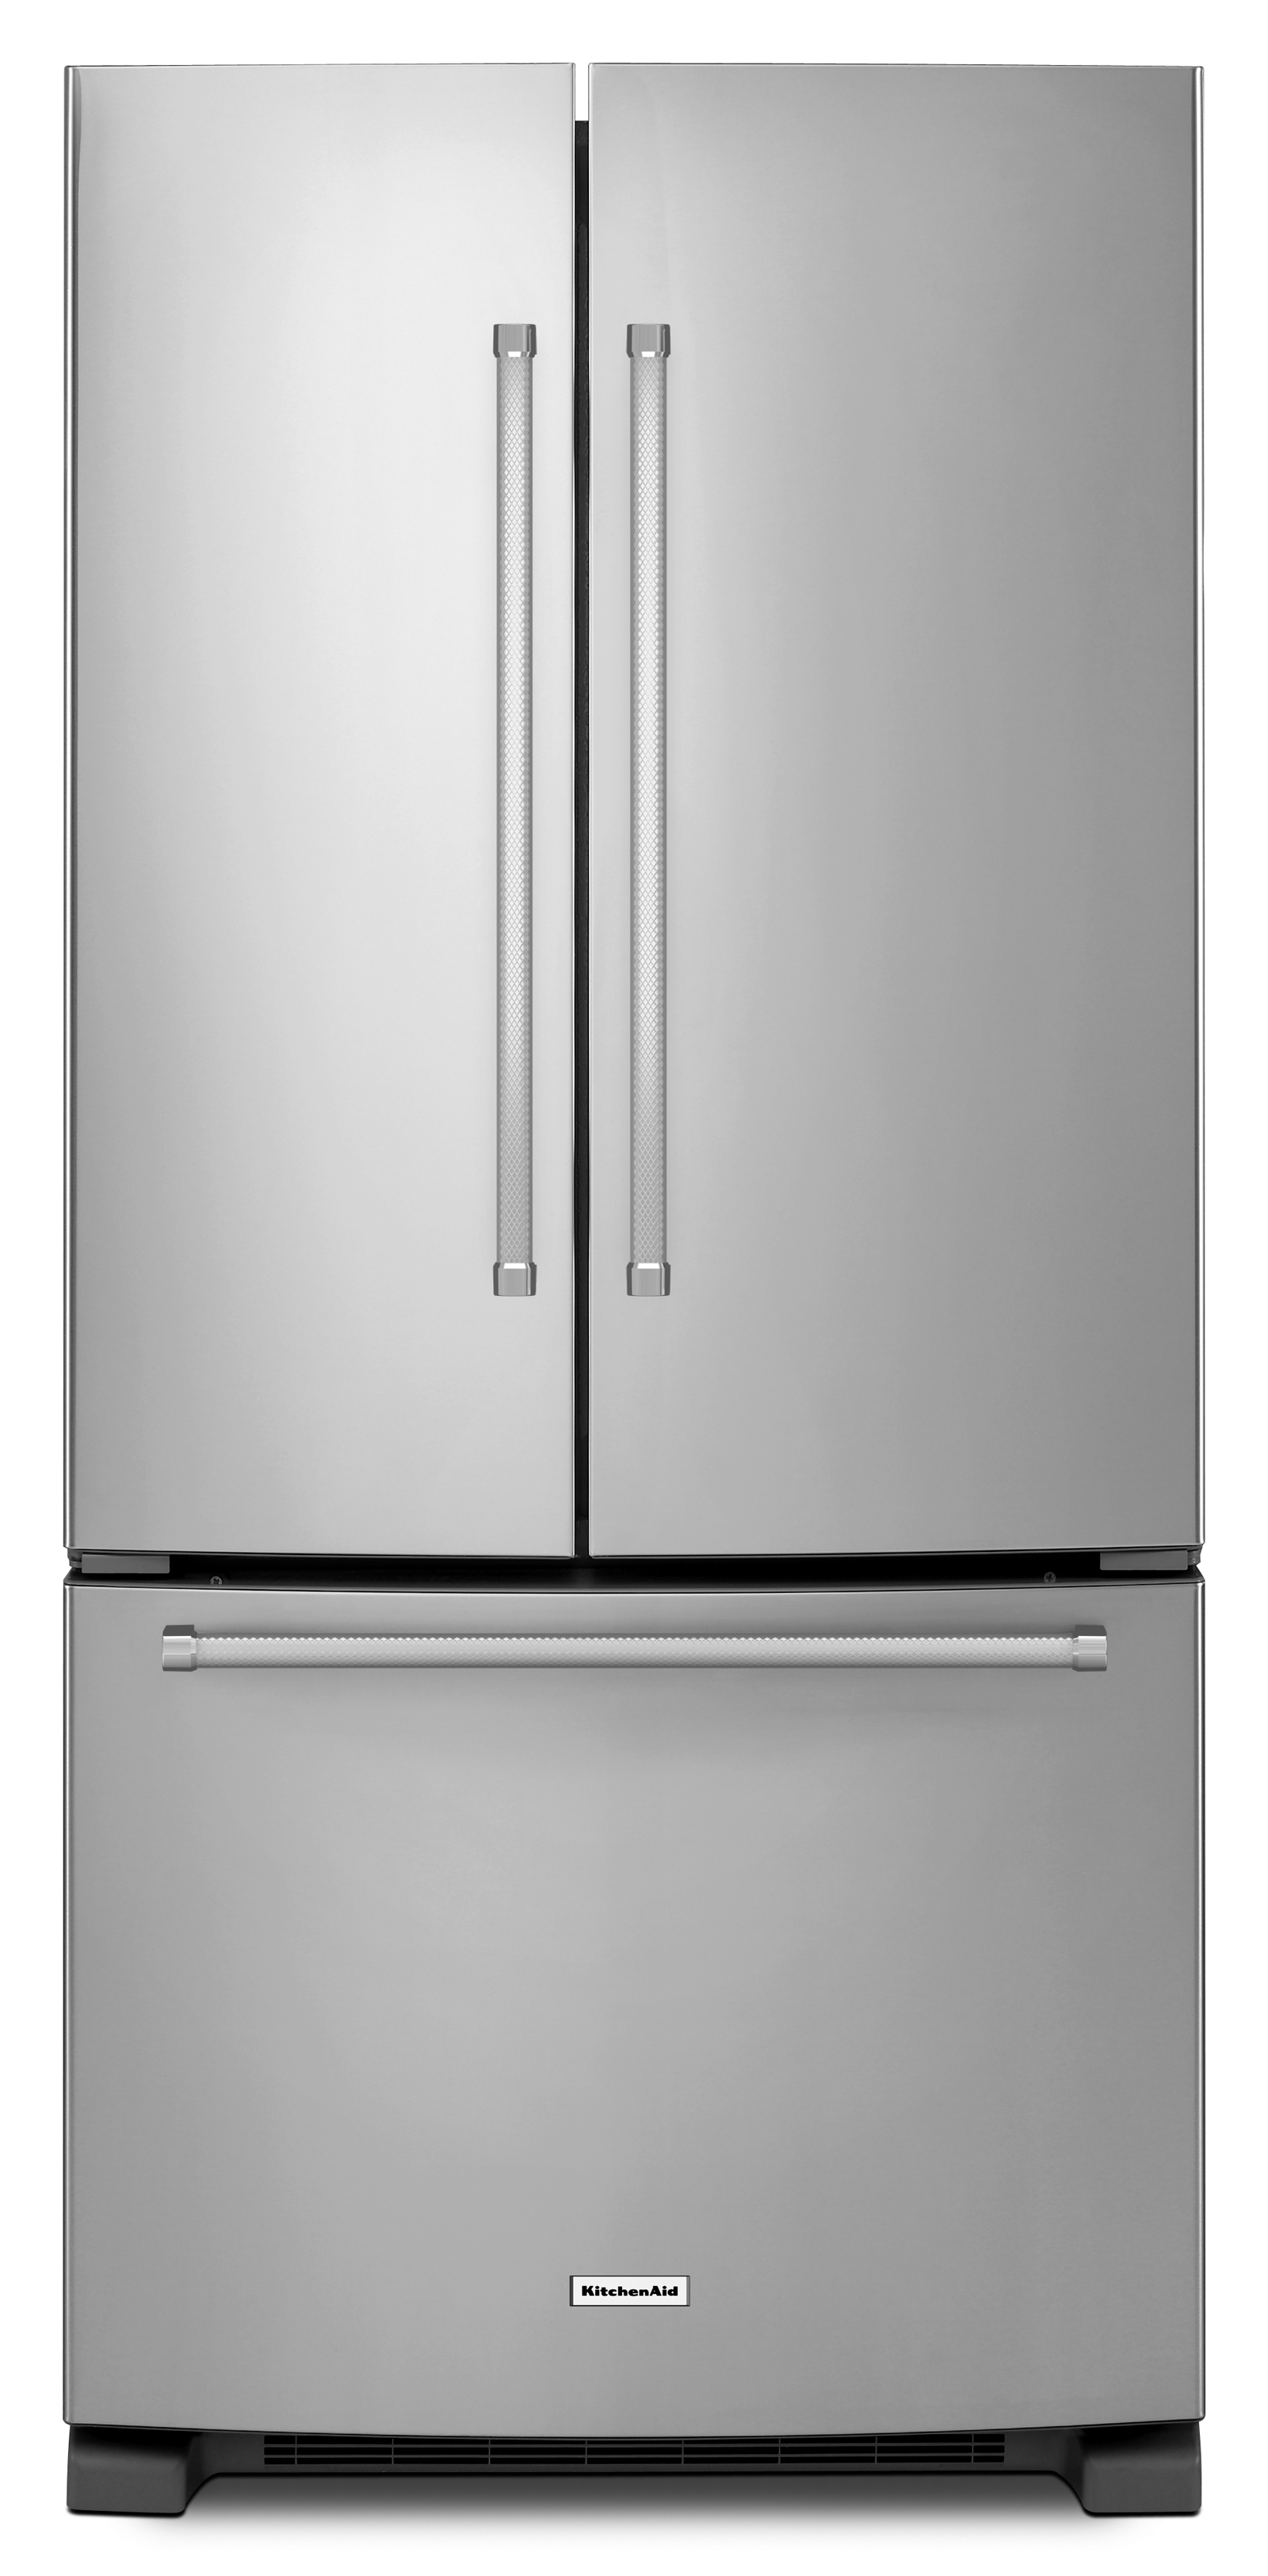 KRFF302ESS-22-cu-ft-French-Door-Refrigerator-Stainless-Steel